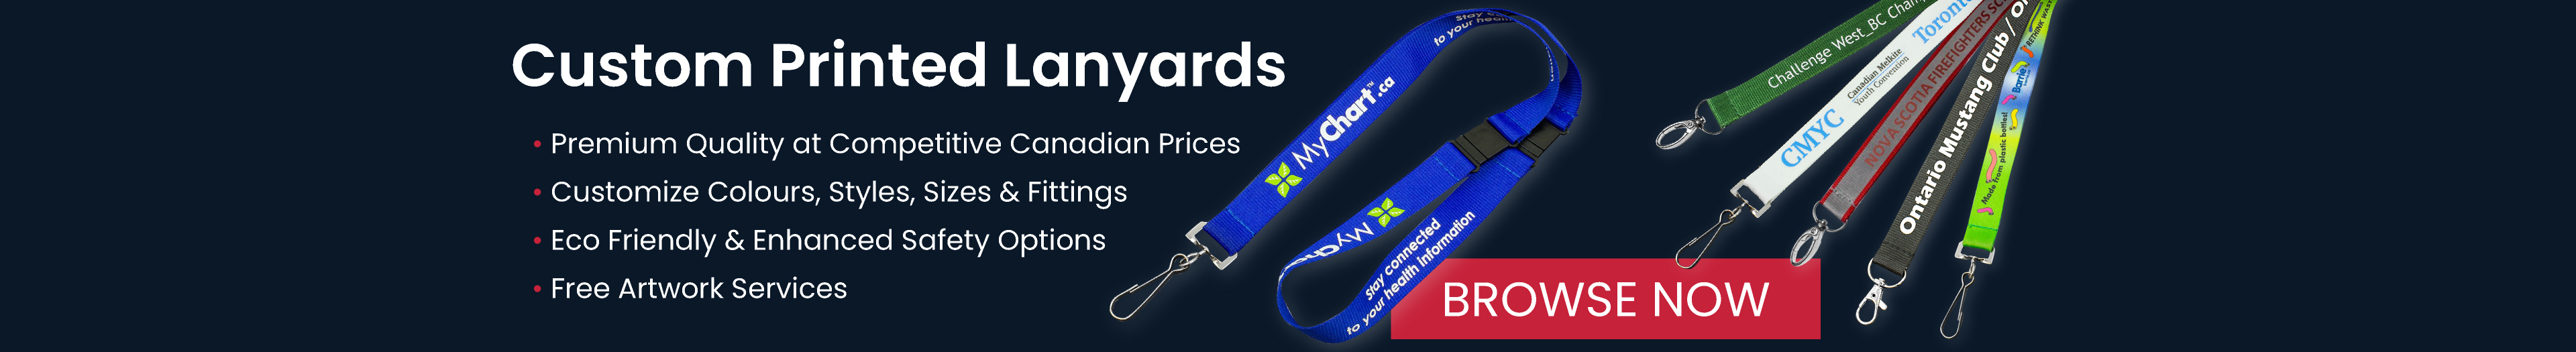 Custom Printed Lanyards – Click to browse dozens of styles, colours and print options!